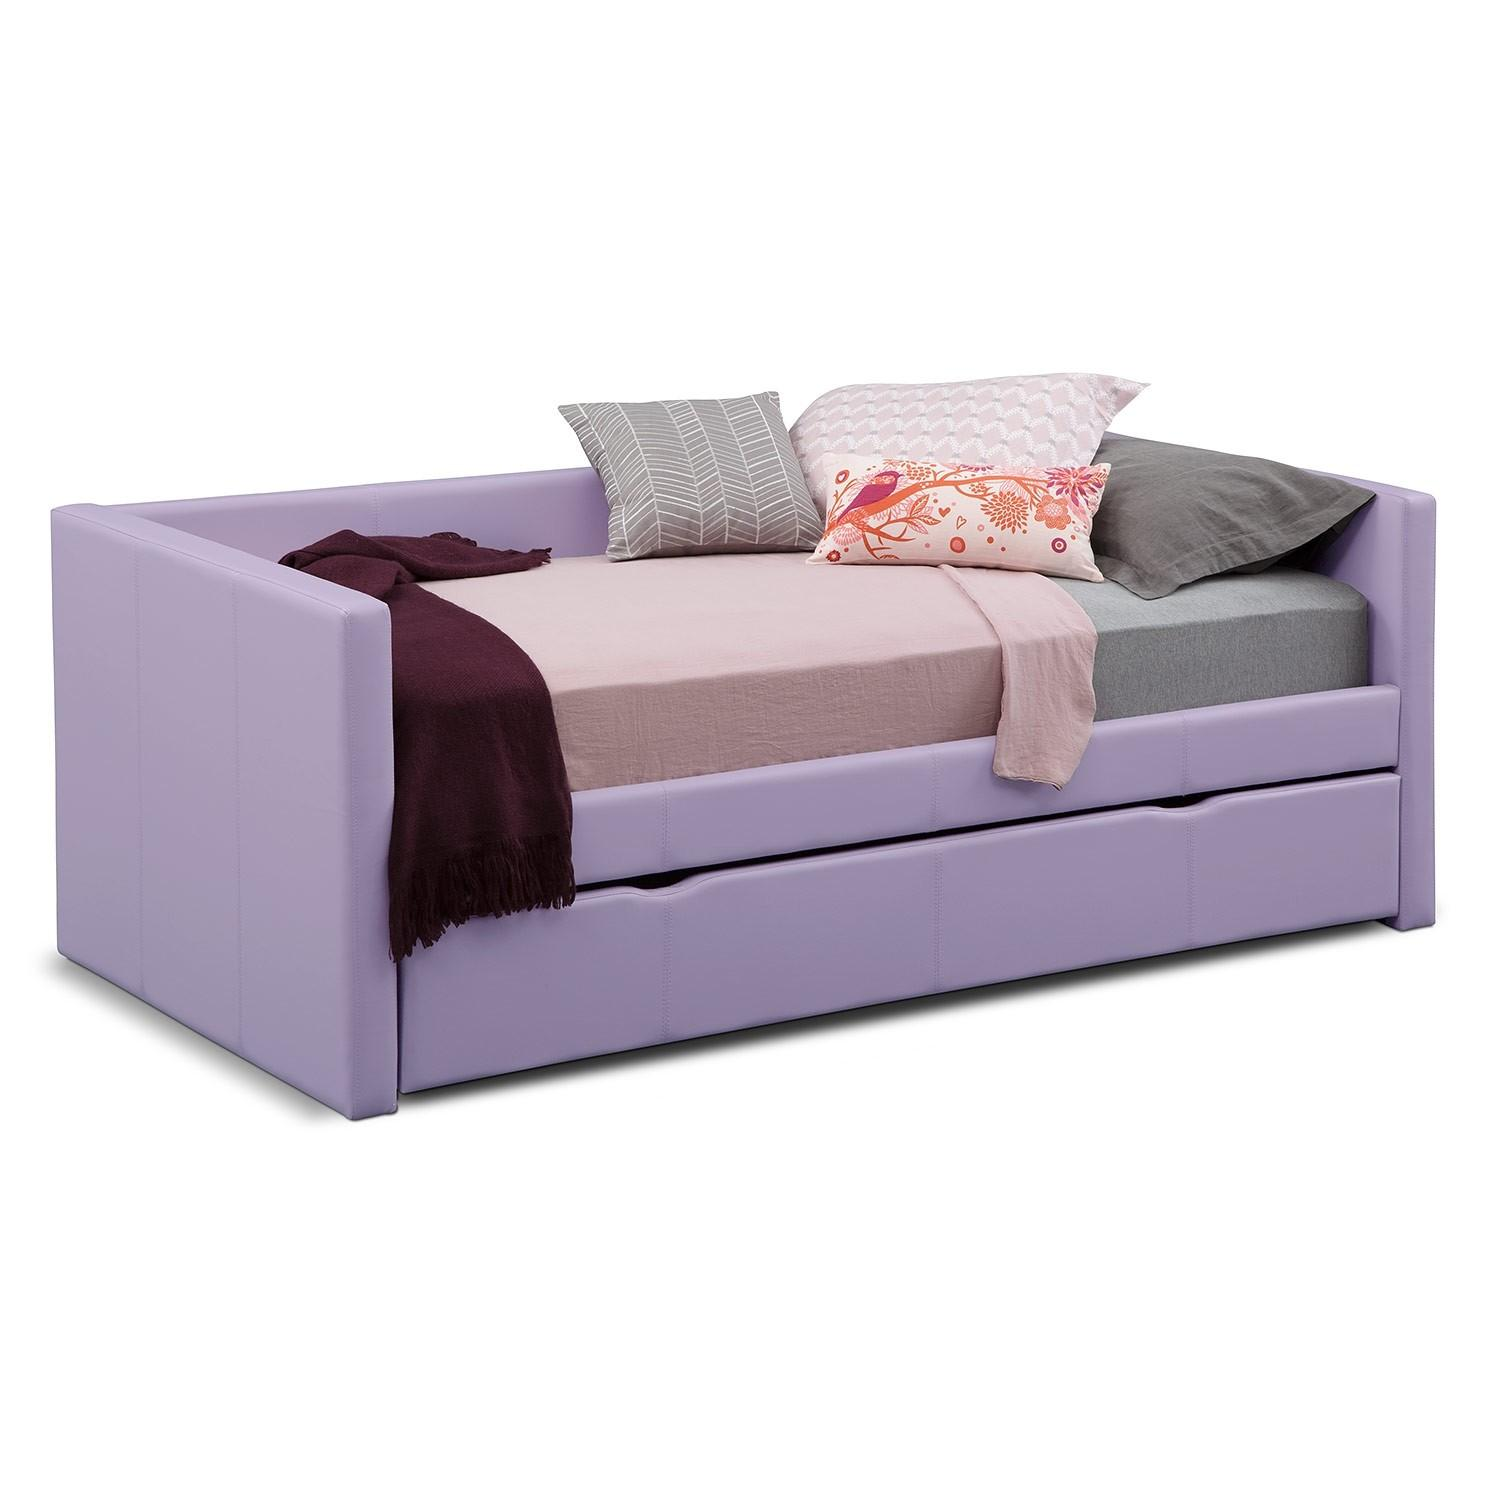 Furniture Perfect Daybed Pop Trundle Bed Decor